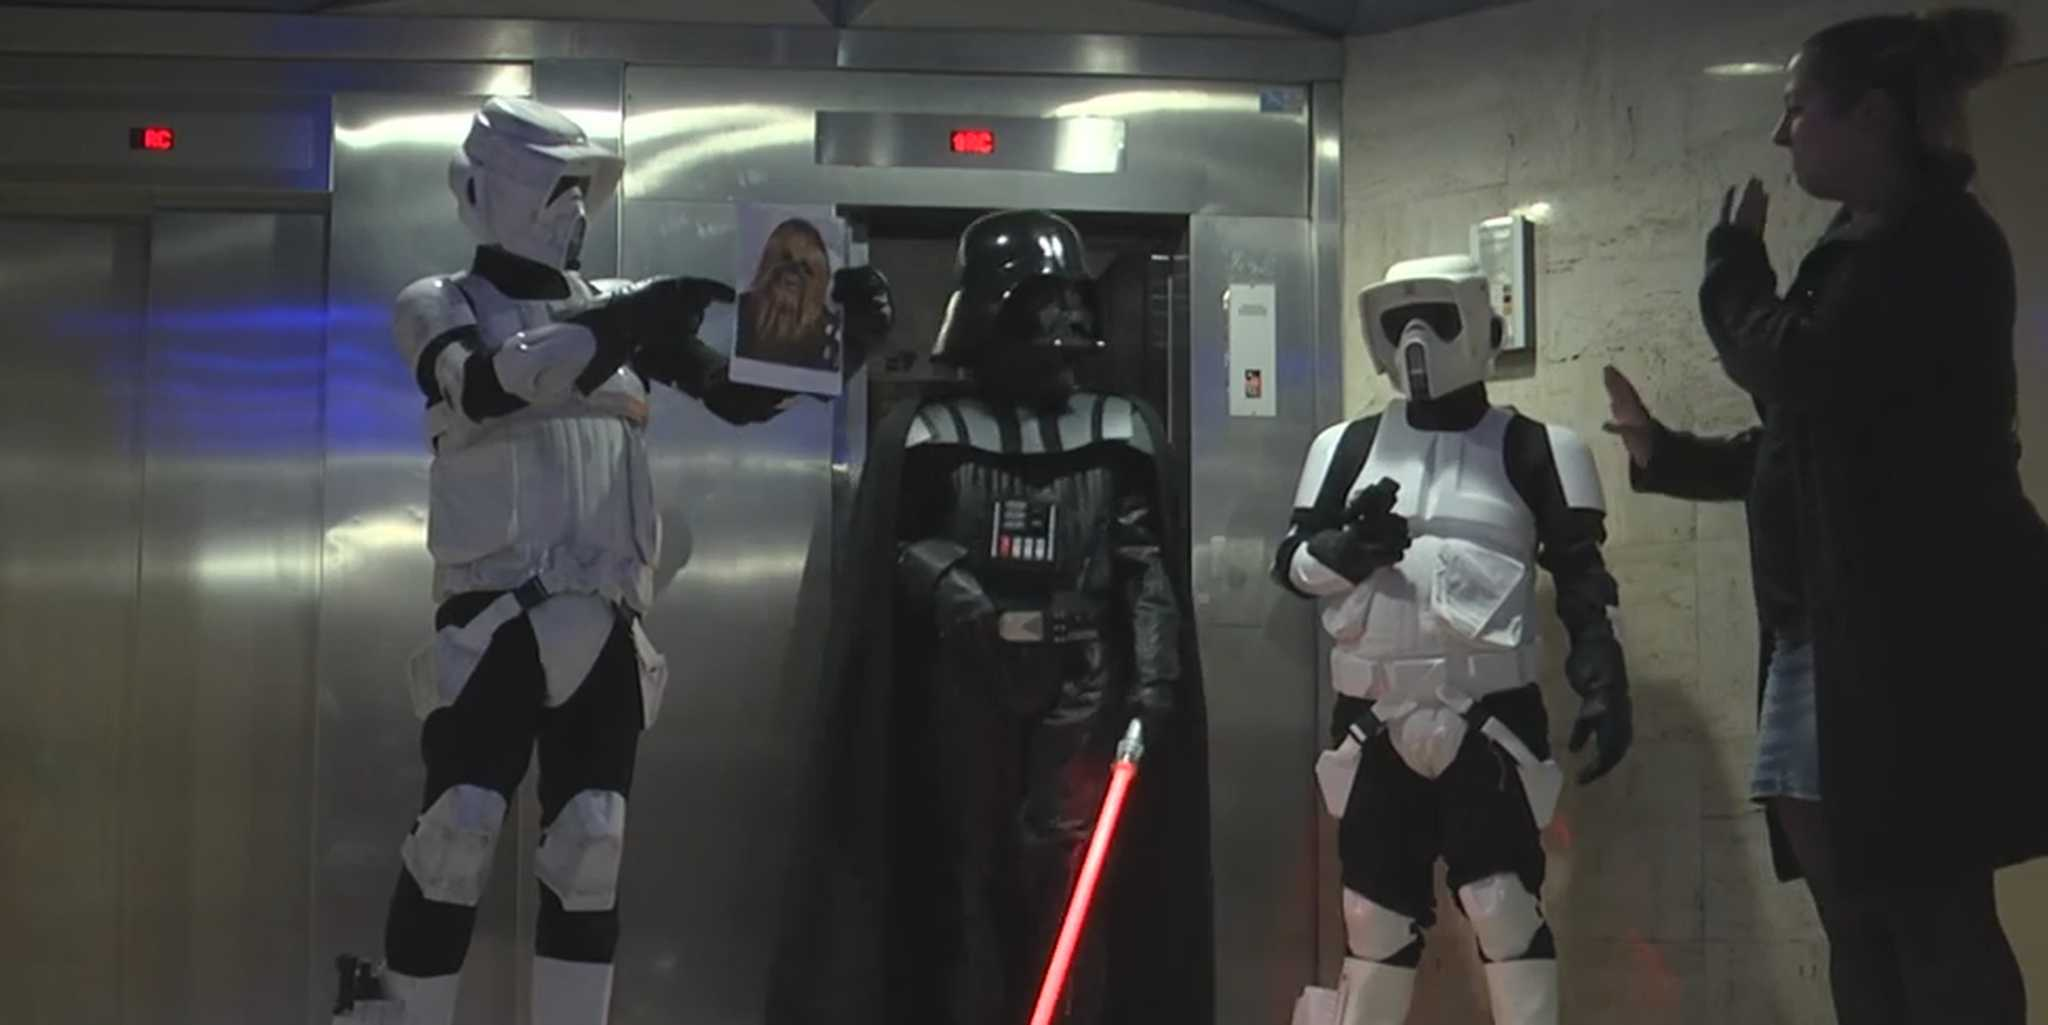 Office workers find themselves in the middle of a Star Wars battle  The Daily Dot